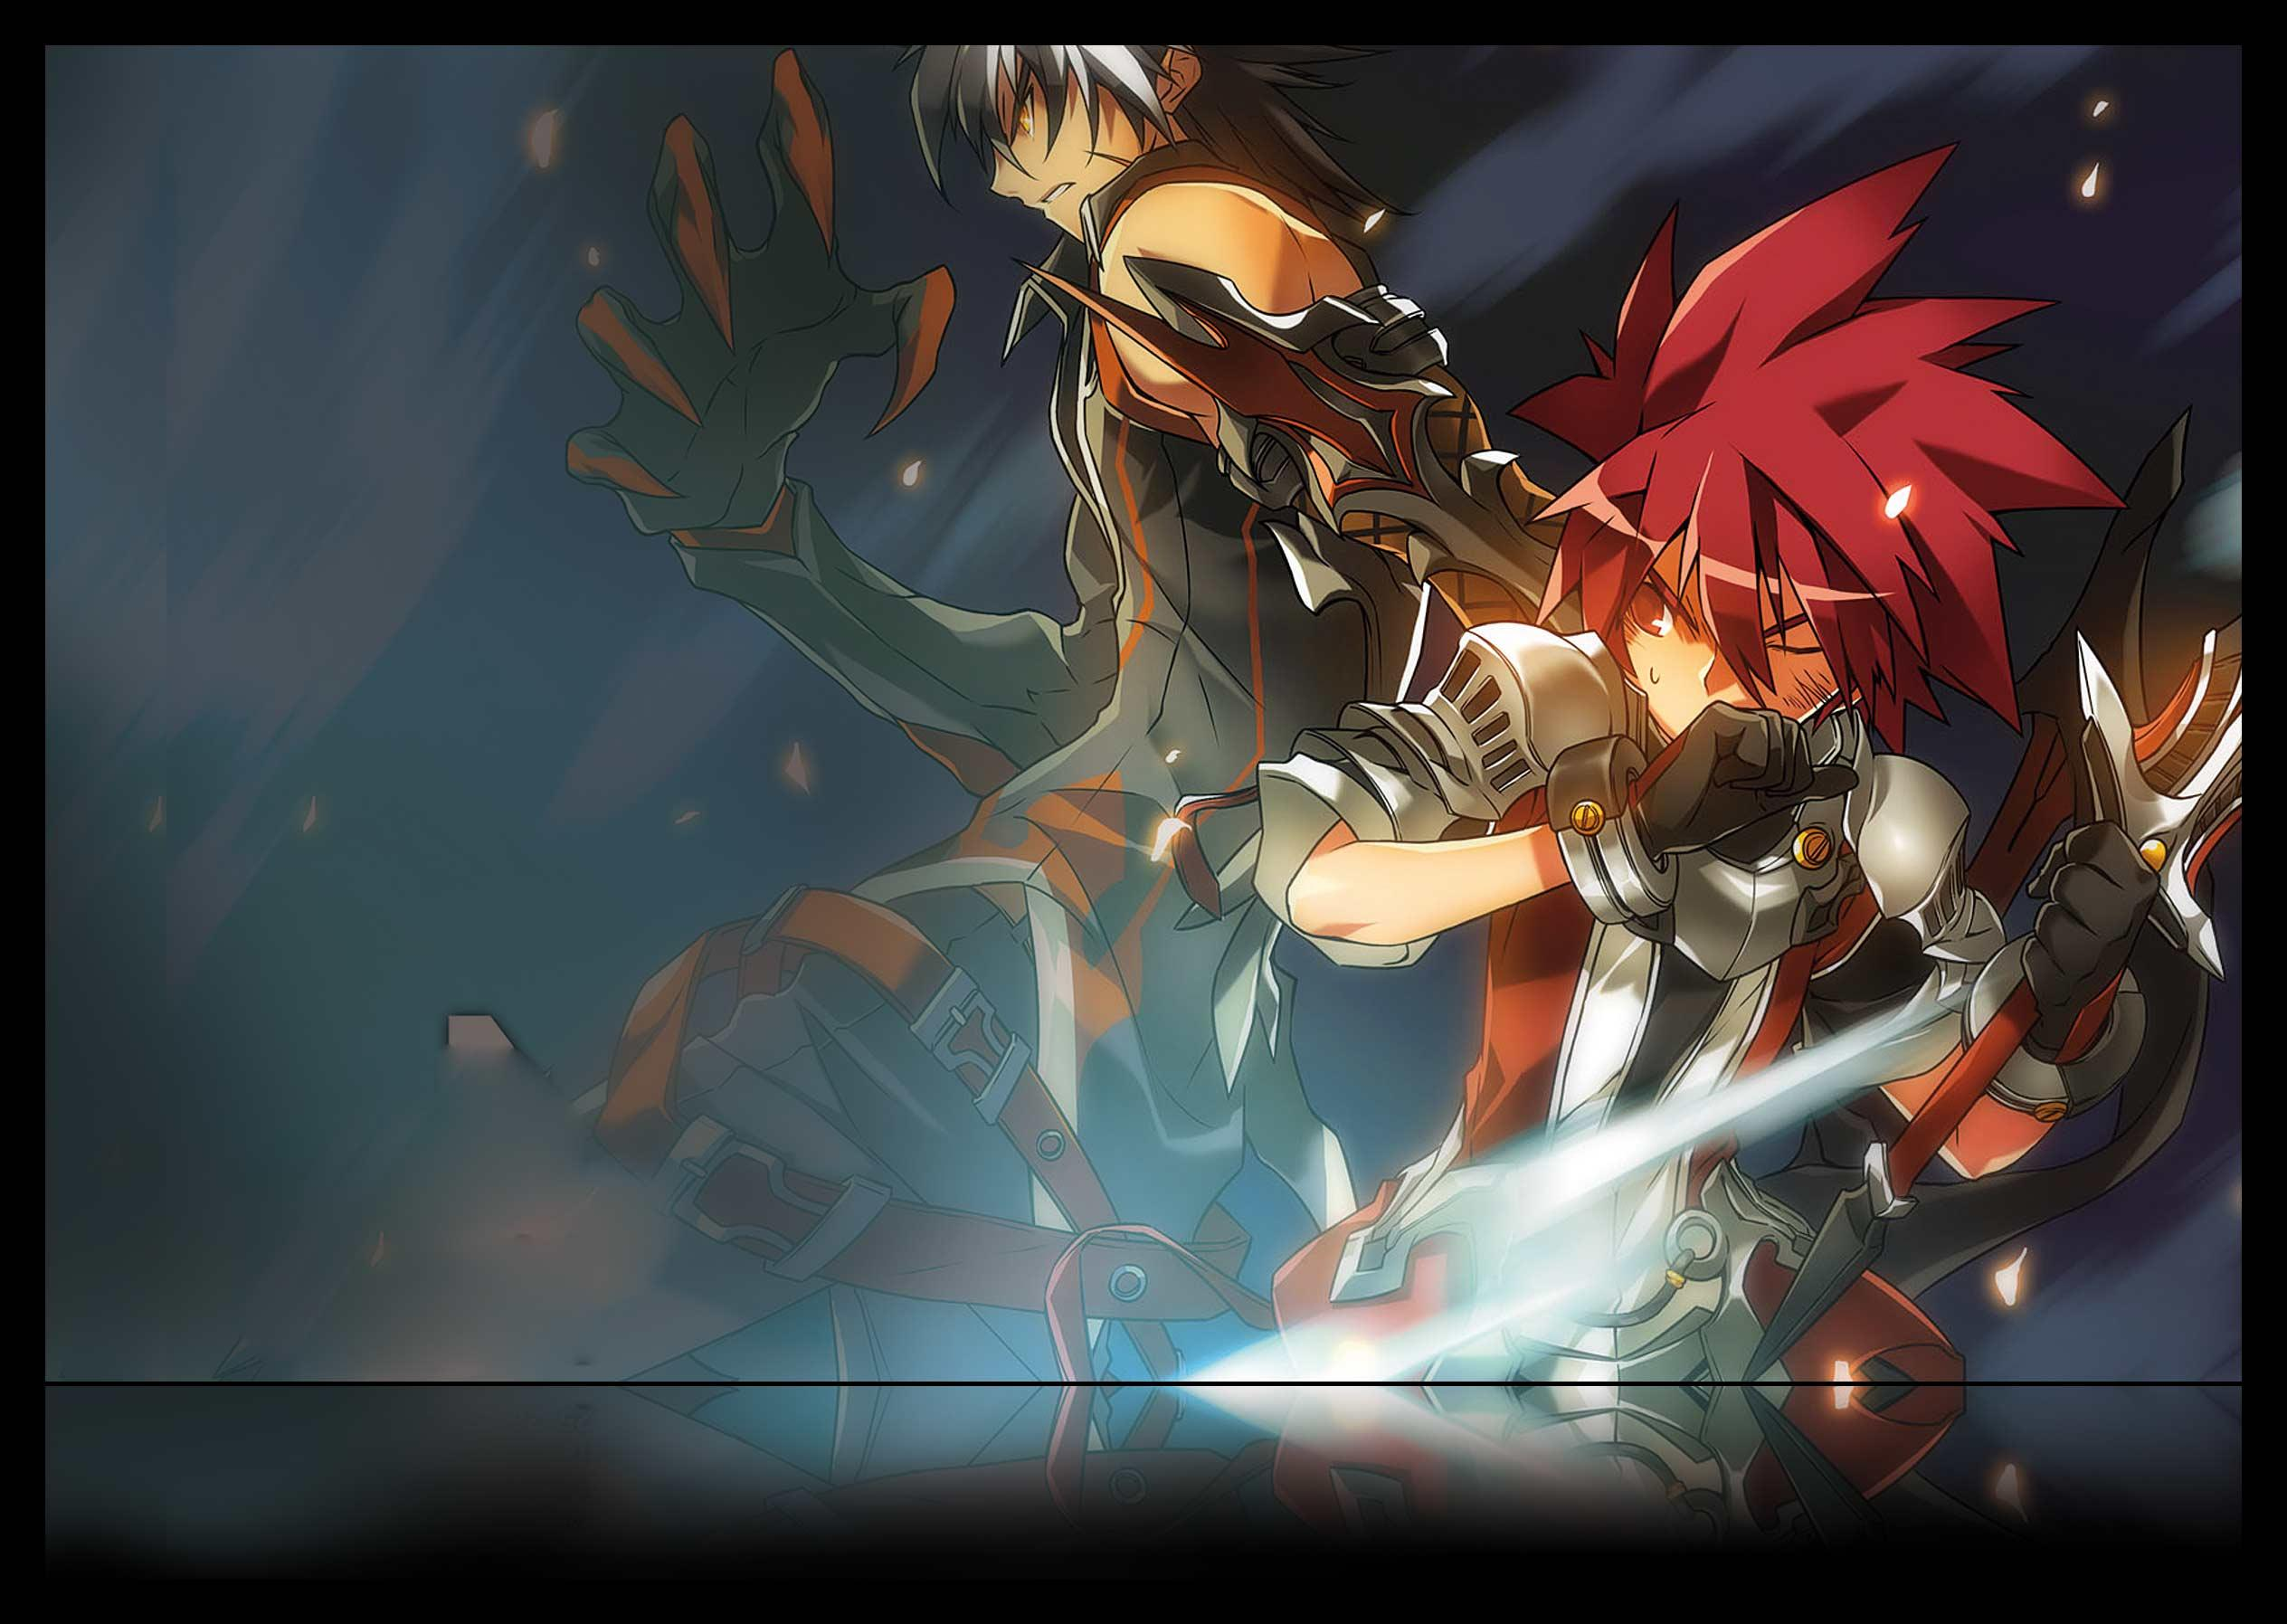 Elsword Wallpaper 106 images in Collection Page 1 2528x1795